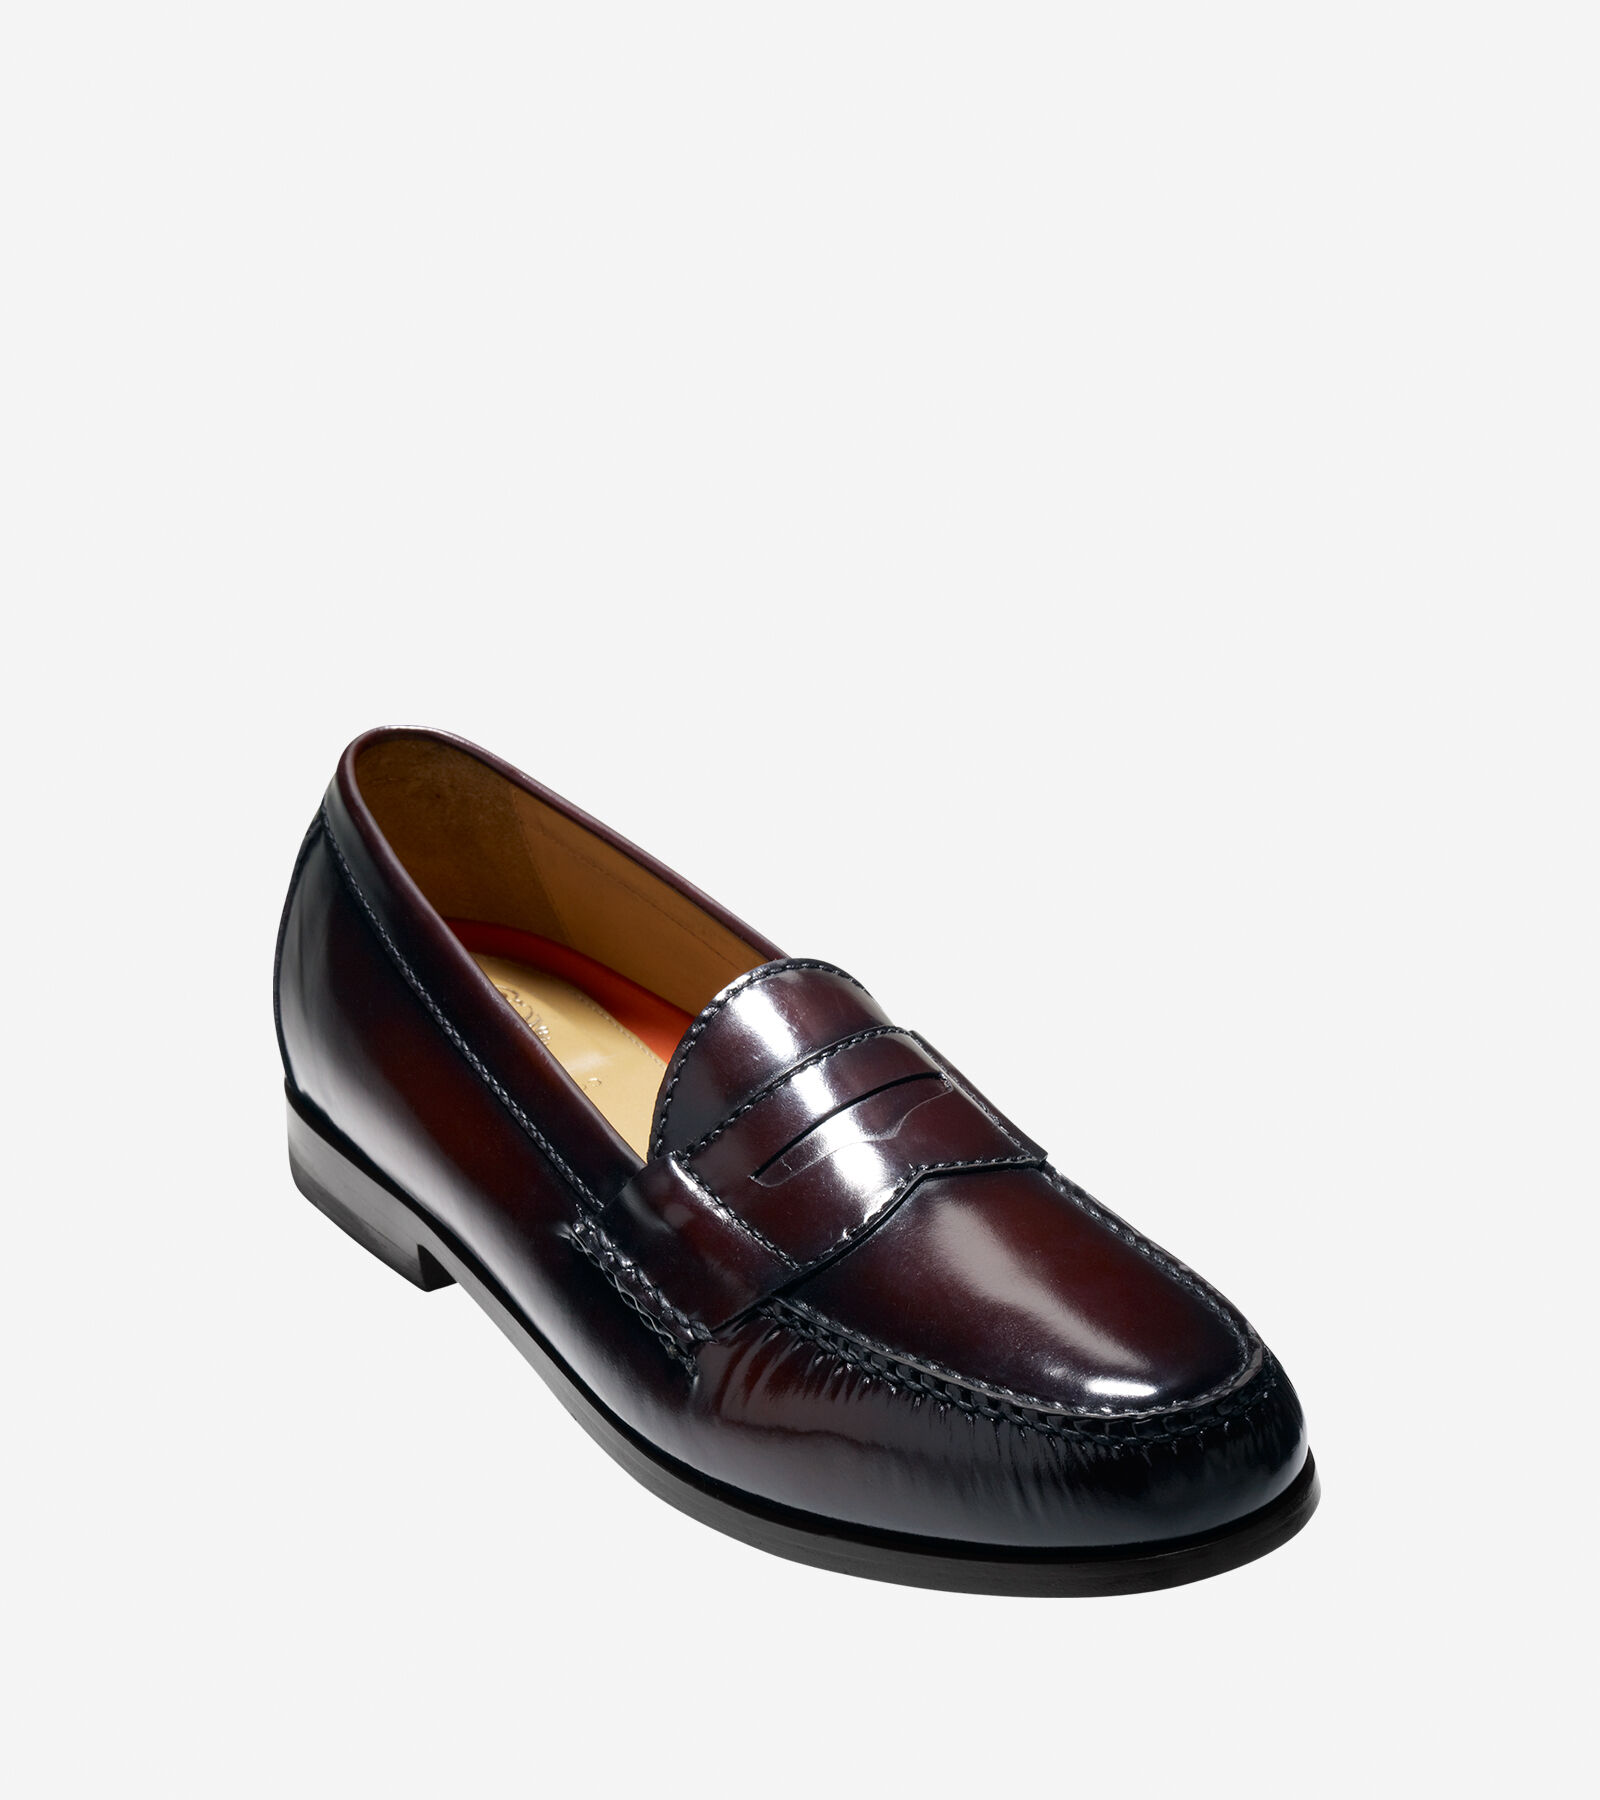 Cole Haan Men's Pinch Grand Casual Penny Loafers Men's Shoes